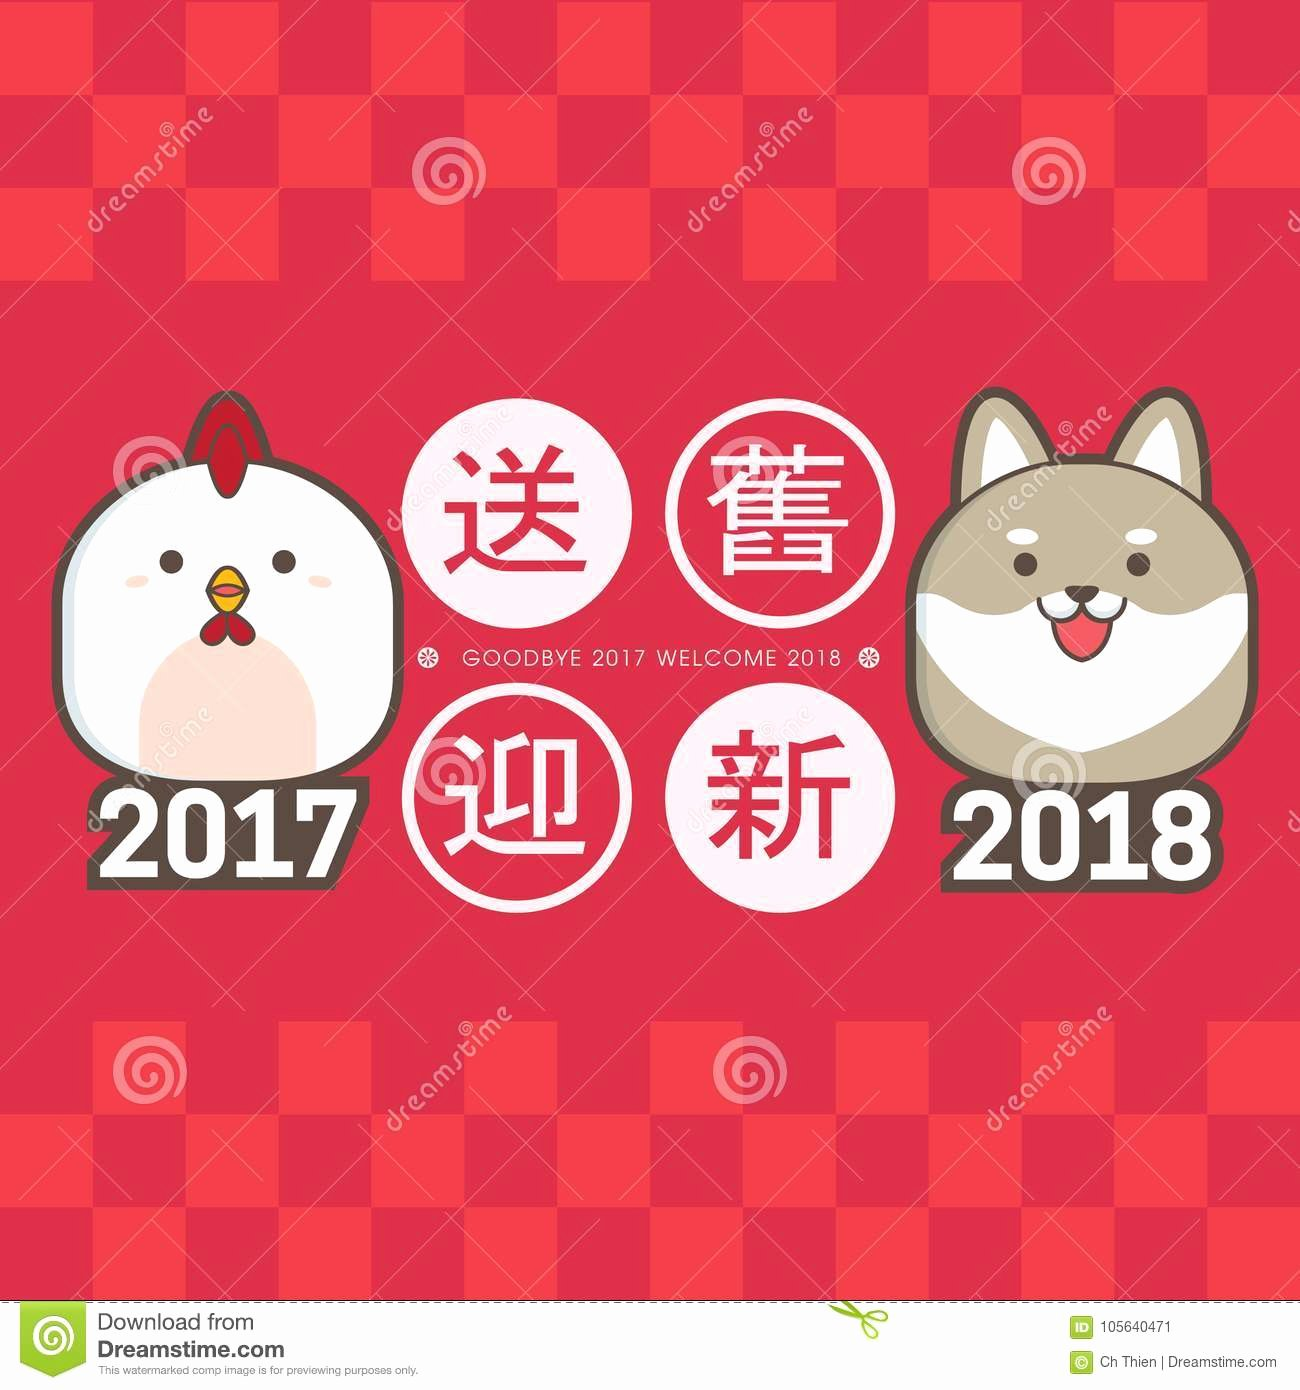 Service Dog Id Card Template Free Download Lovely 2018 Chinese New Year Greeting Card Template with Cute